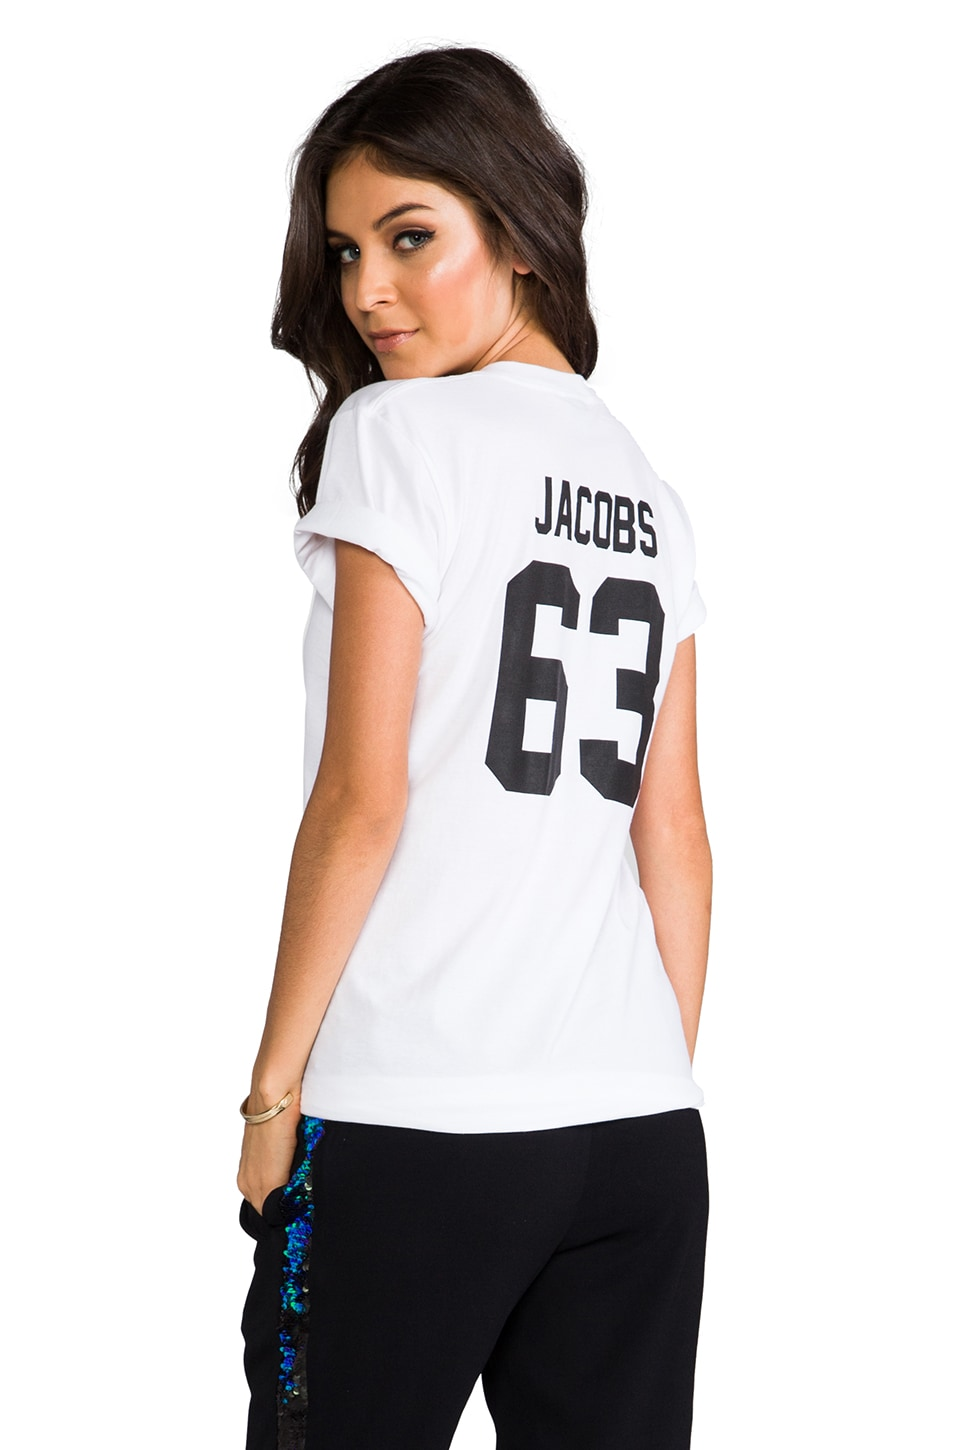 LPD New York LPD NYC Jacobs Tee in White